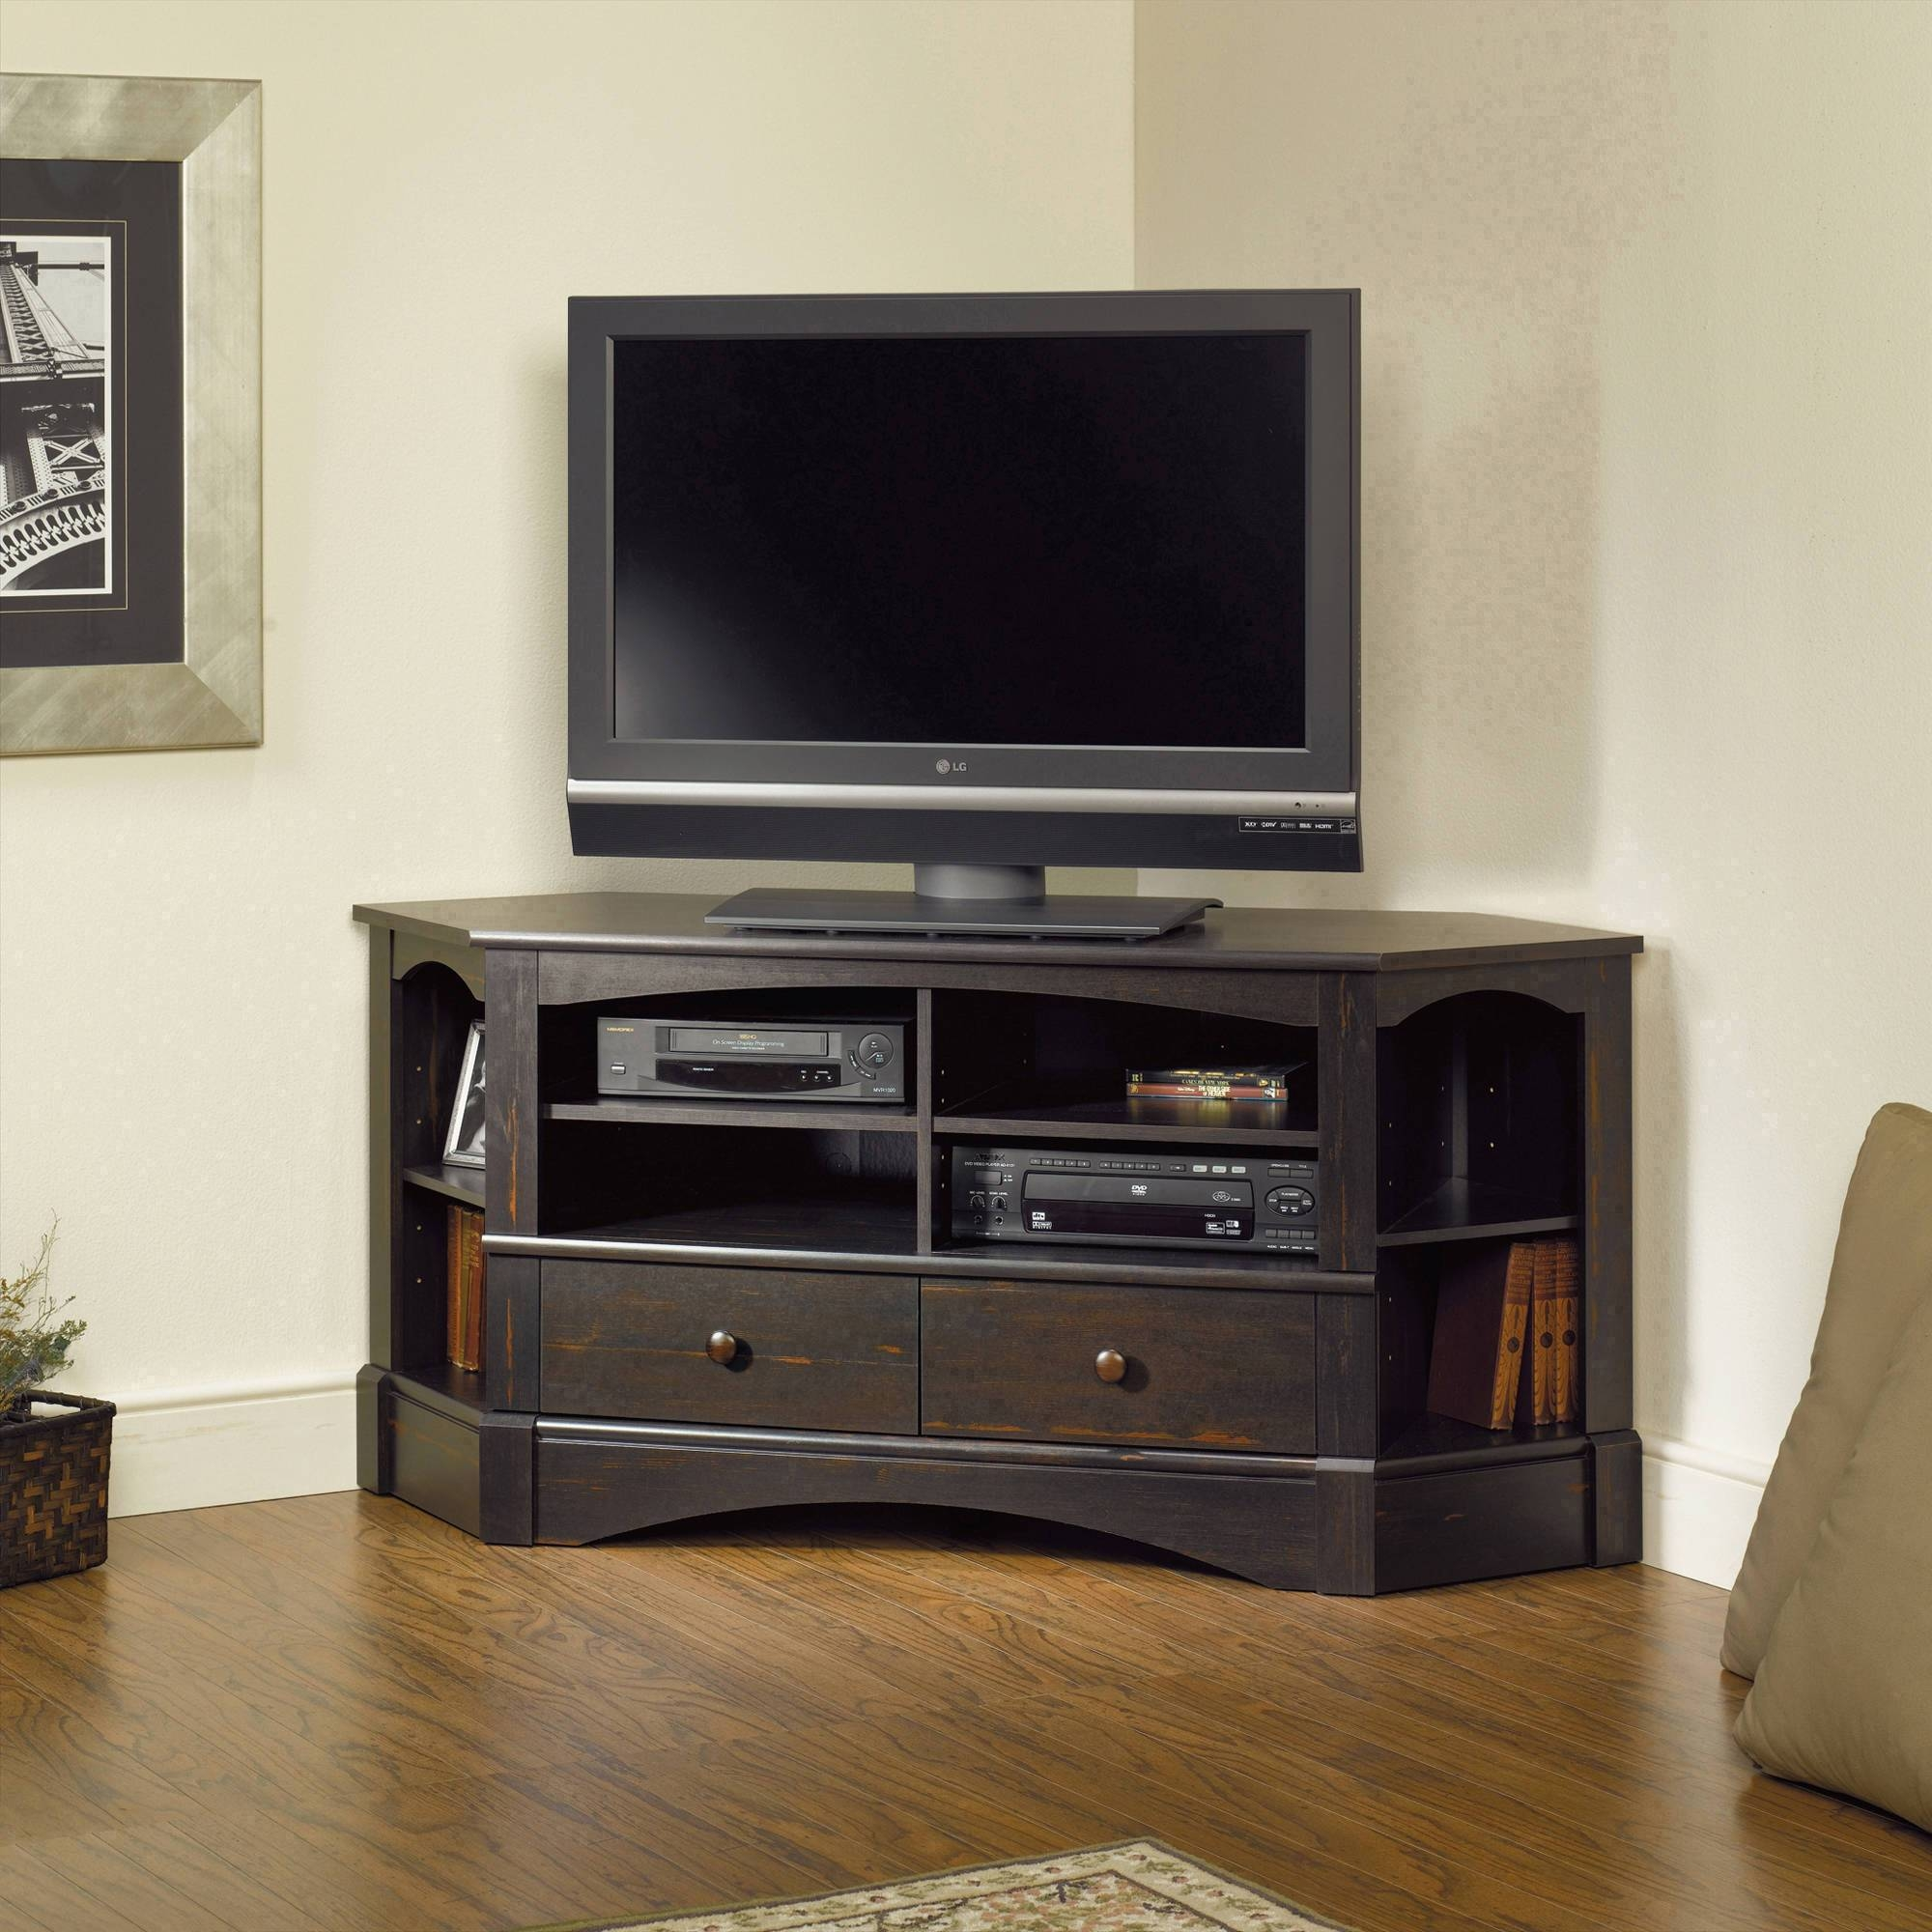 """Sauder Black Tv Stand For Tvs With Bases Up To 39"""" – Walmart With Regard To Como Tv Stands (View 9 of 15)"""